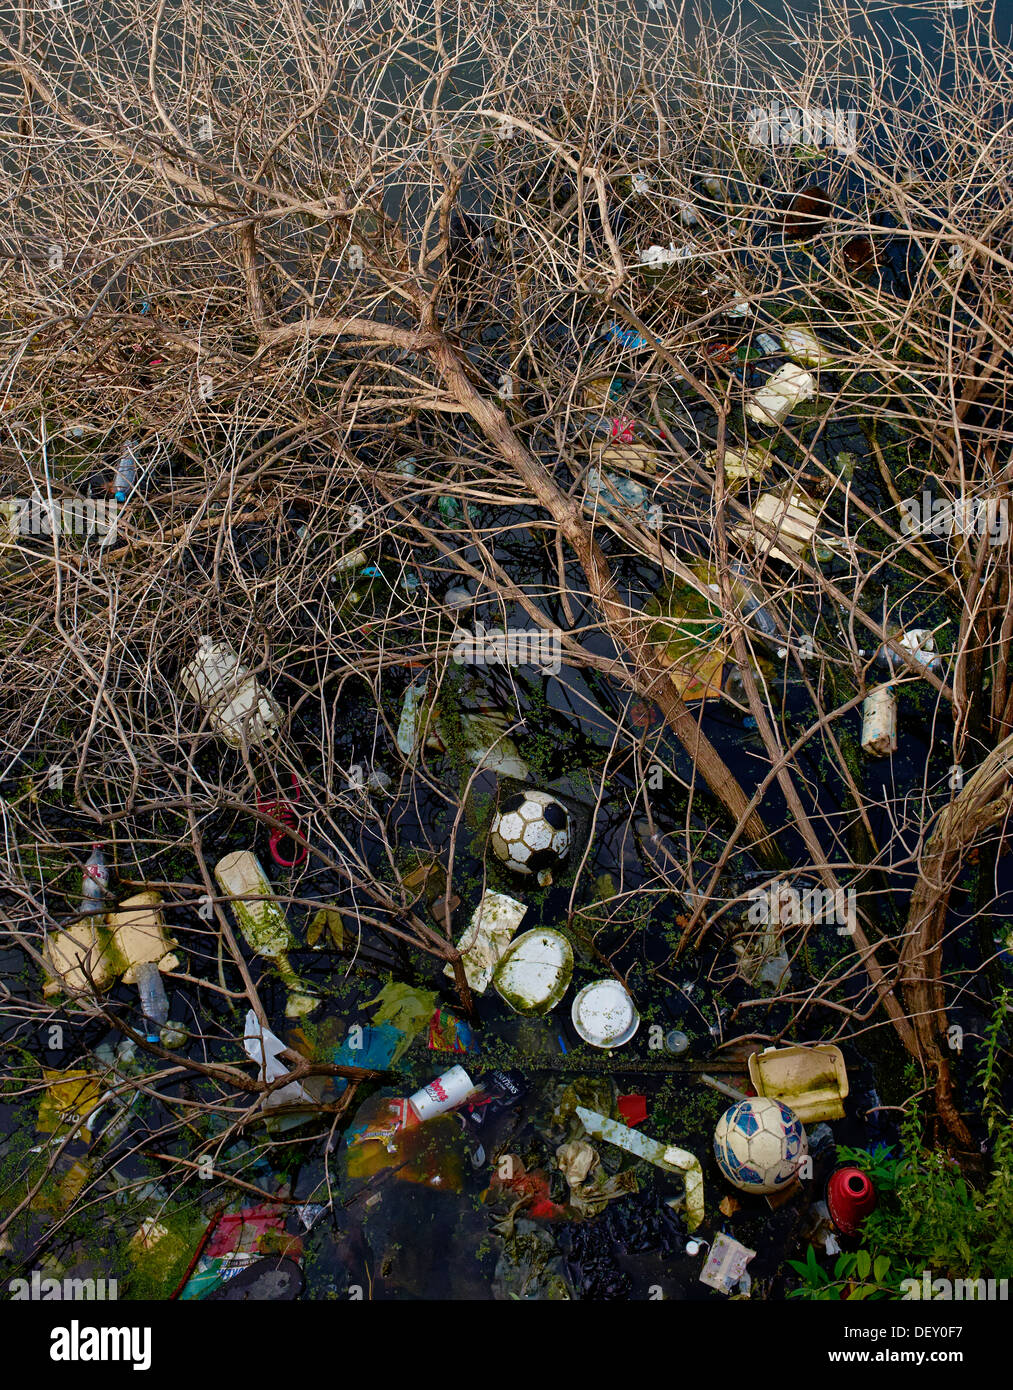 Polluted river with rubbish accumulating. - Stock Image